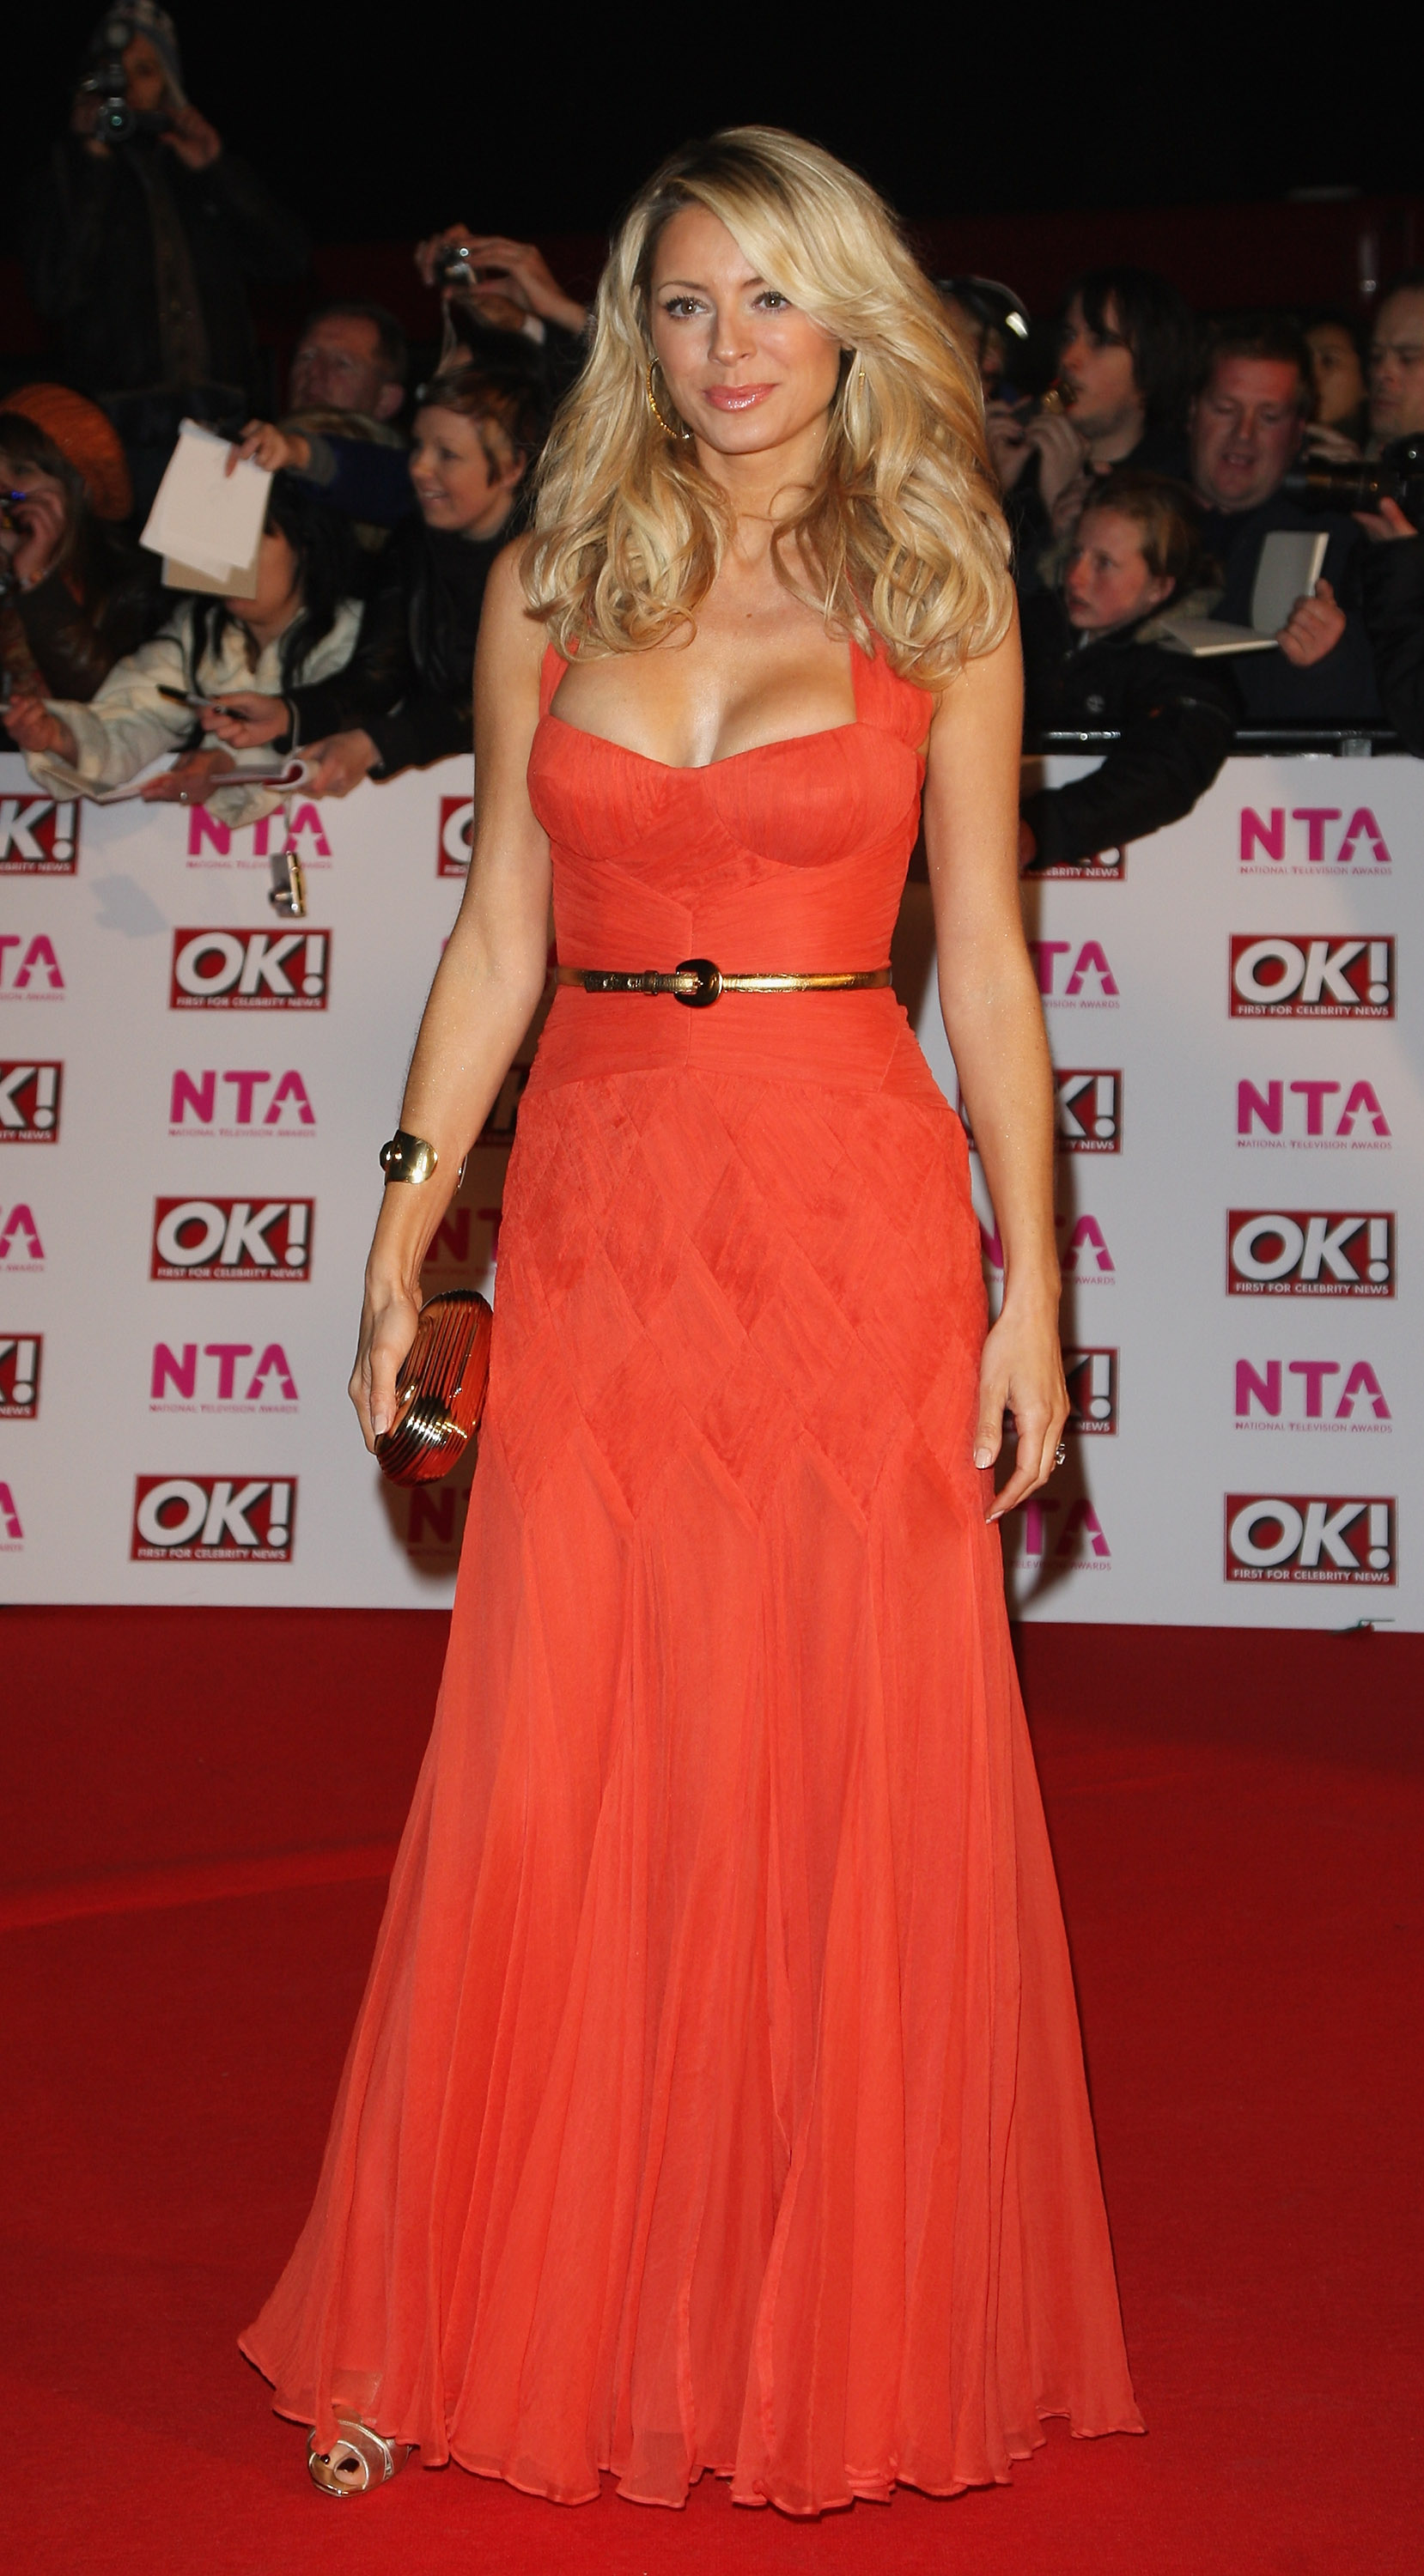 18136_Celebutopia-Tess_Daly_arrives_at_the_2008_National_Television_Awards-01_122_917lo.jpg